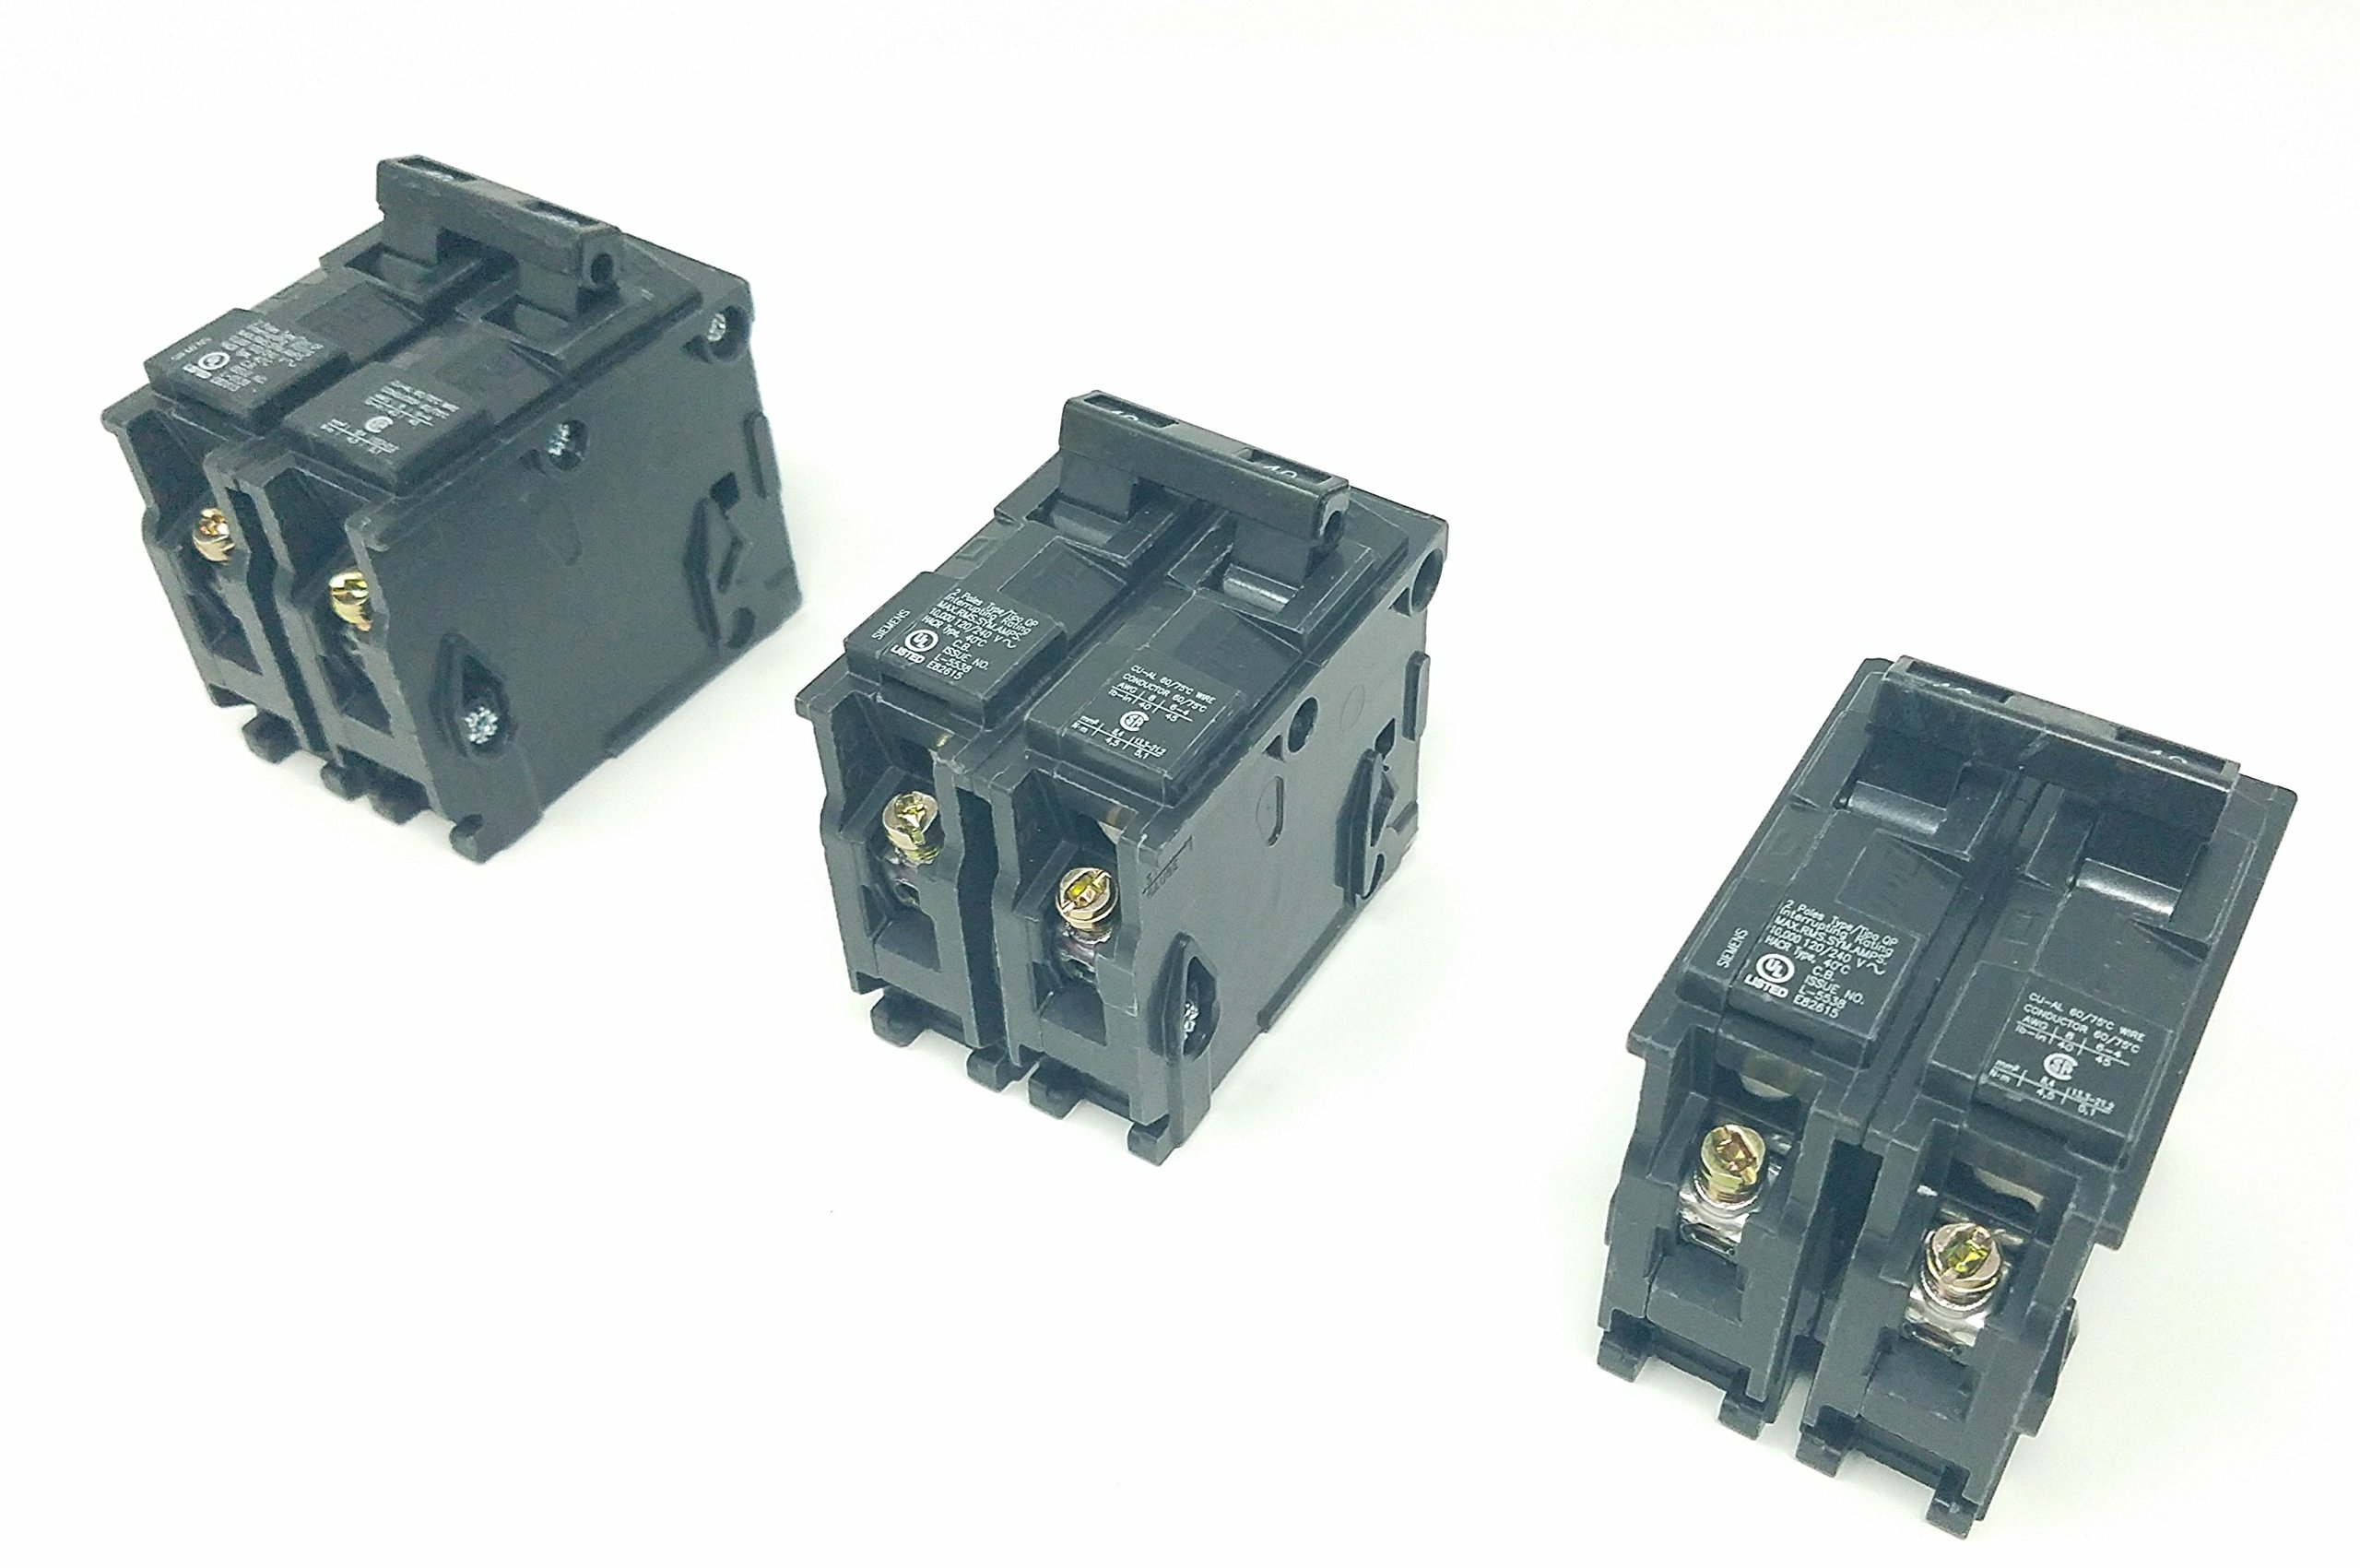 Best Rated In Magnetic Circuit Breakers Helpful Customer Reviews For Sale Dc Breaker Electronic Siemens Q240 40 Amp Dual Pole Pack Of 3 Product Image